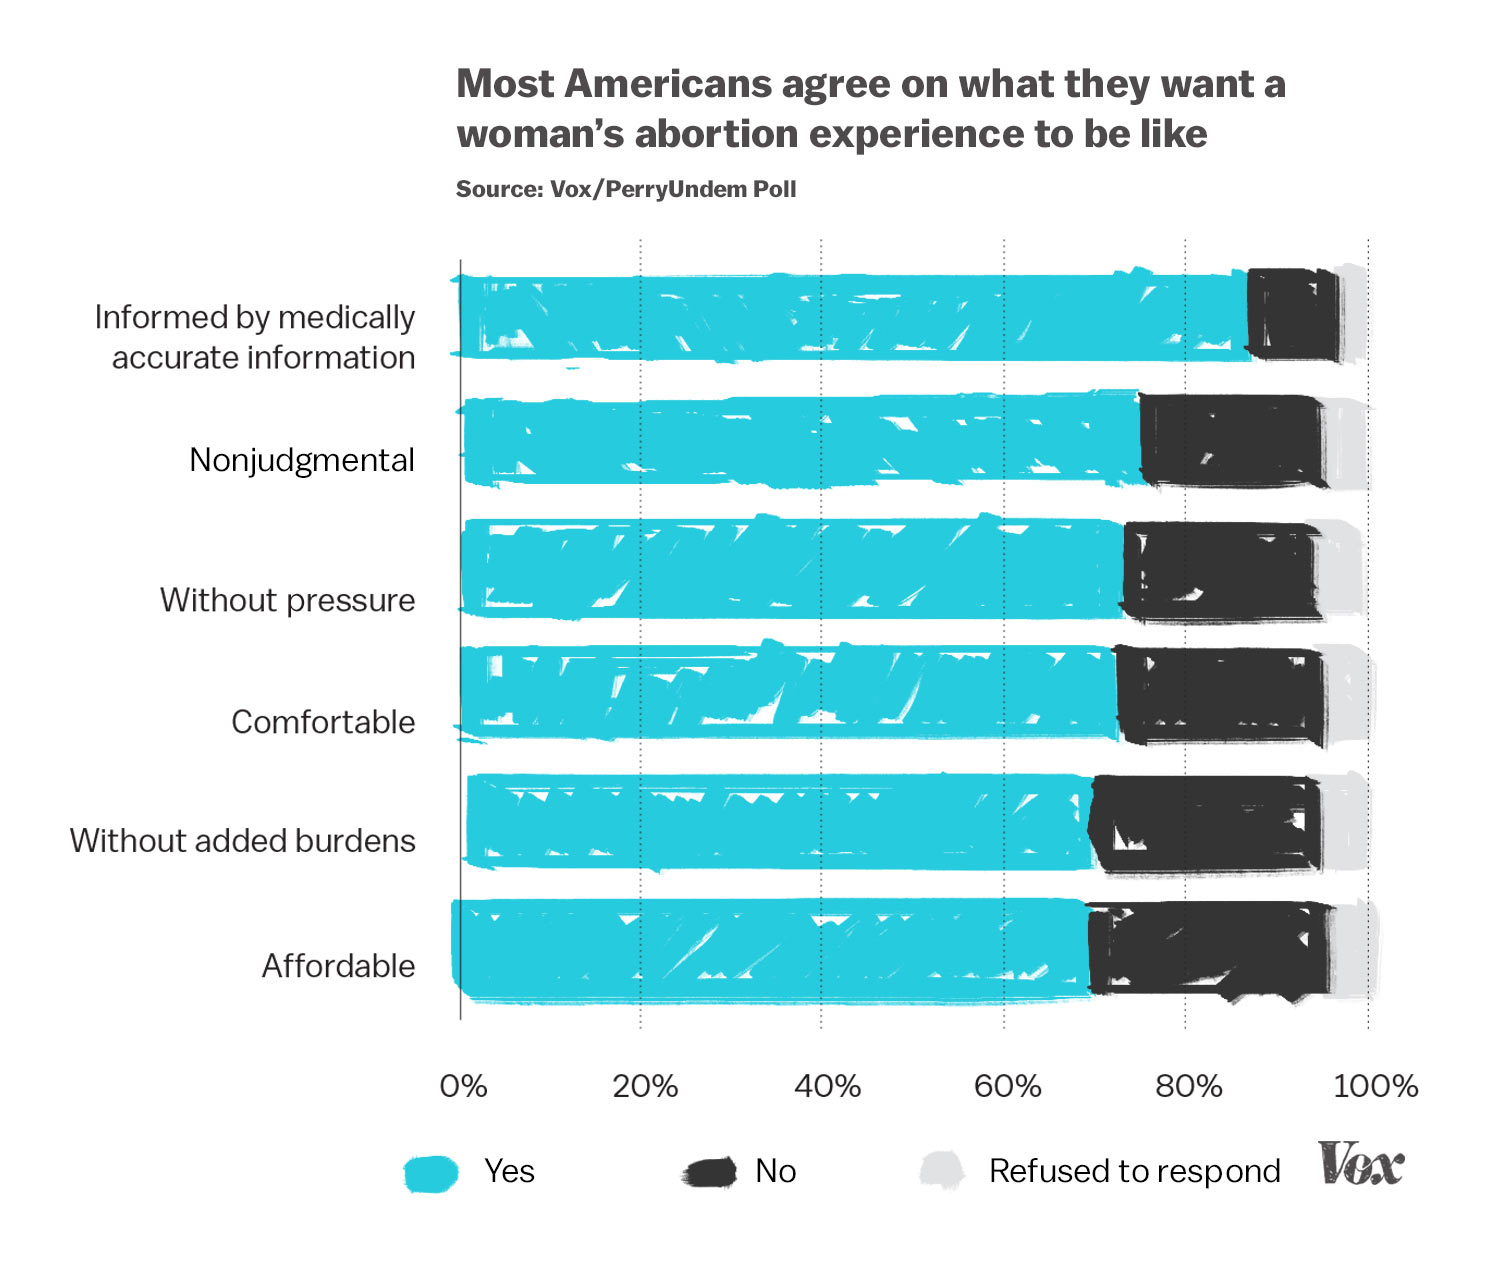 chart of Americans views on how the abortion experience should be